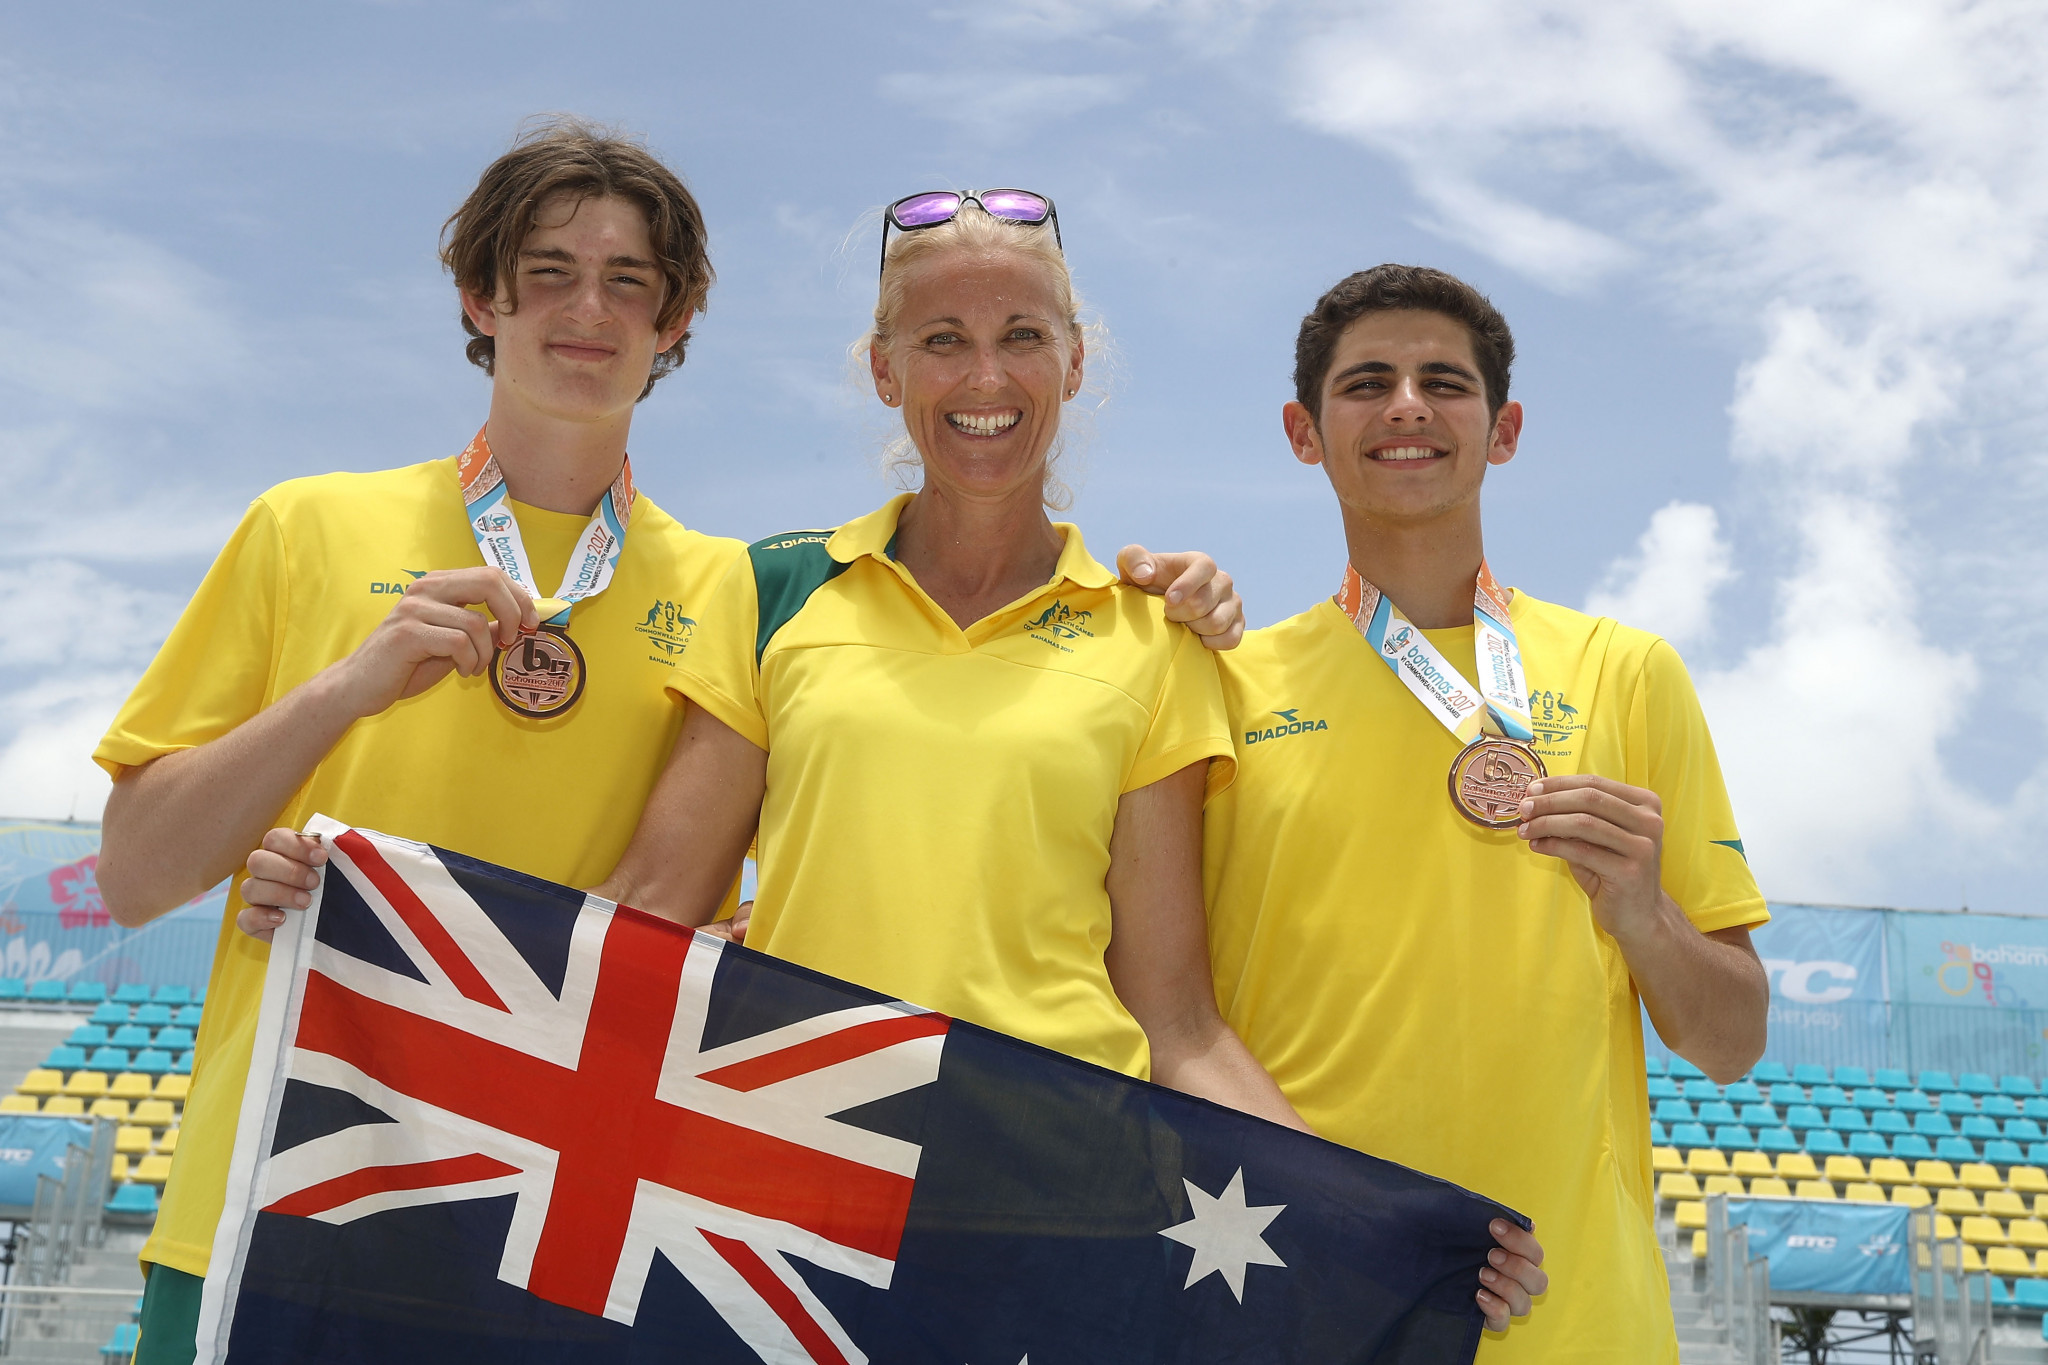 Australian beach volleyball legend Pottharst named special guest for PNG Sports Awards